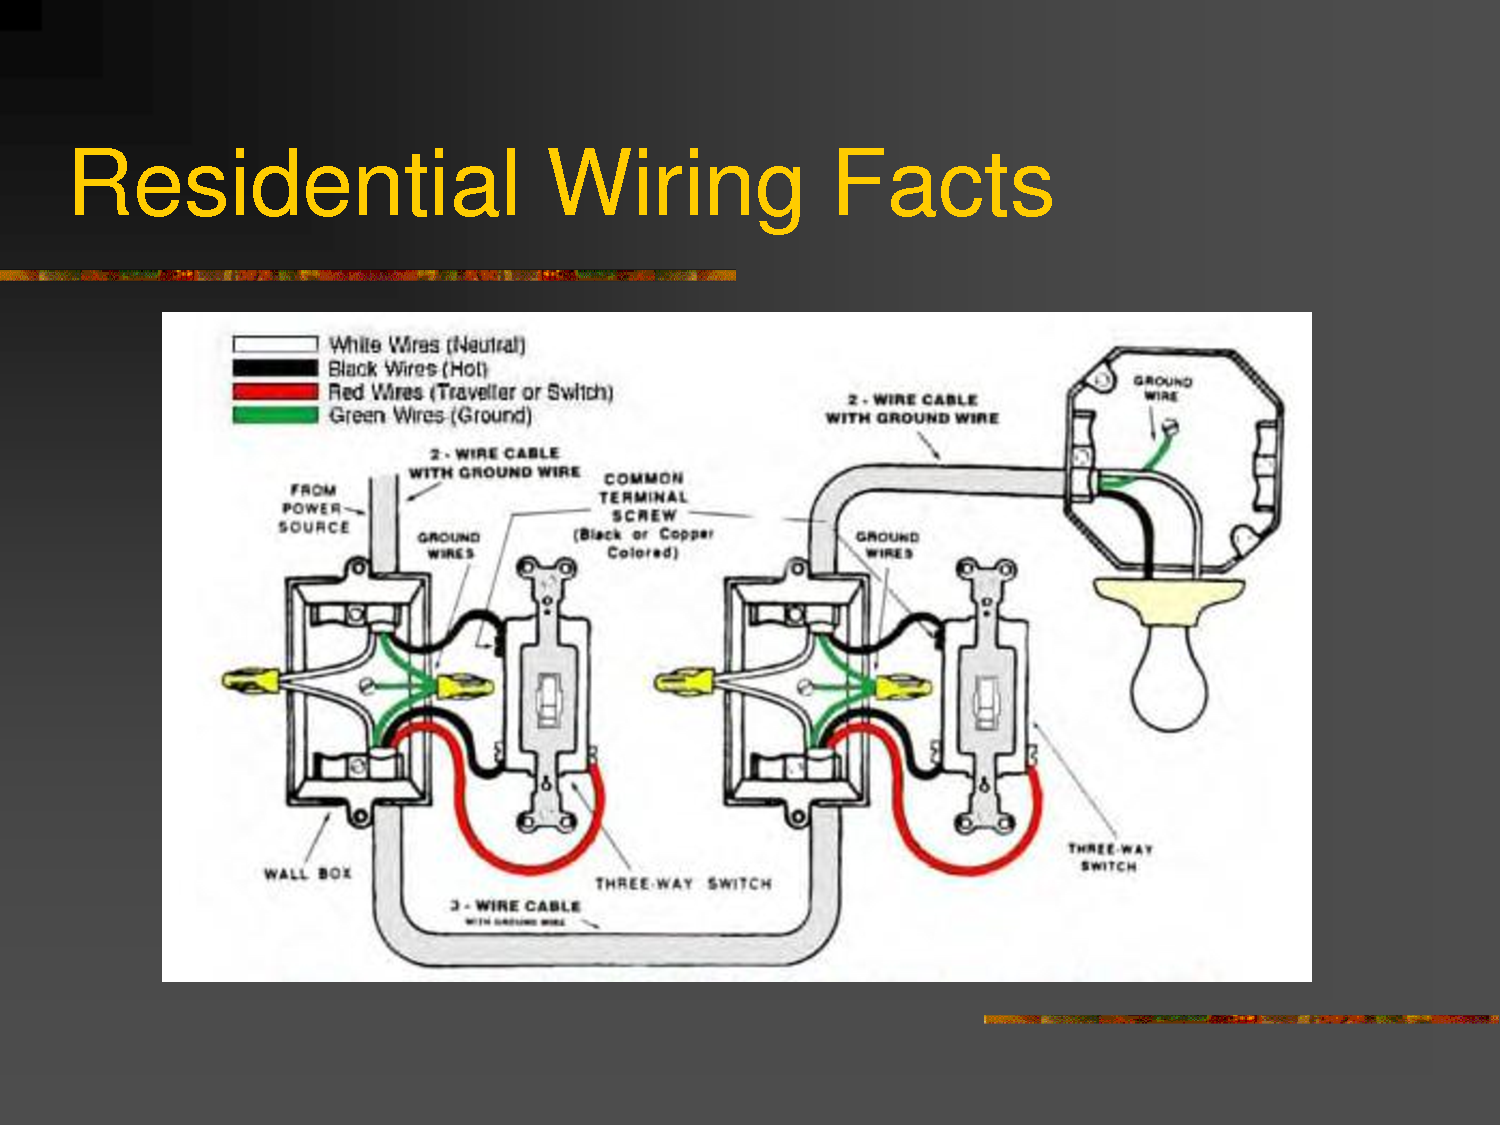 medium resolution of residential wiring diagrams wiring diagram name residential wiring diagram examples 4 best images of residential wiring